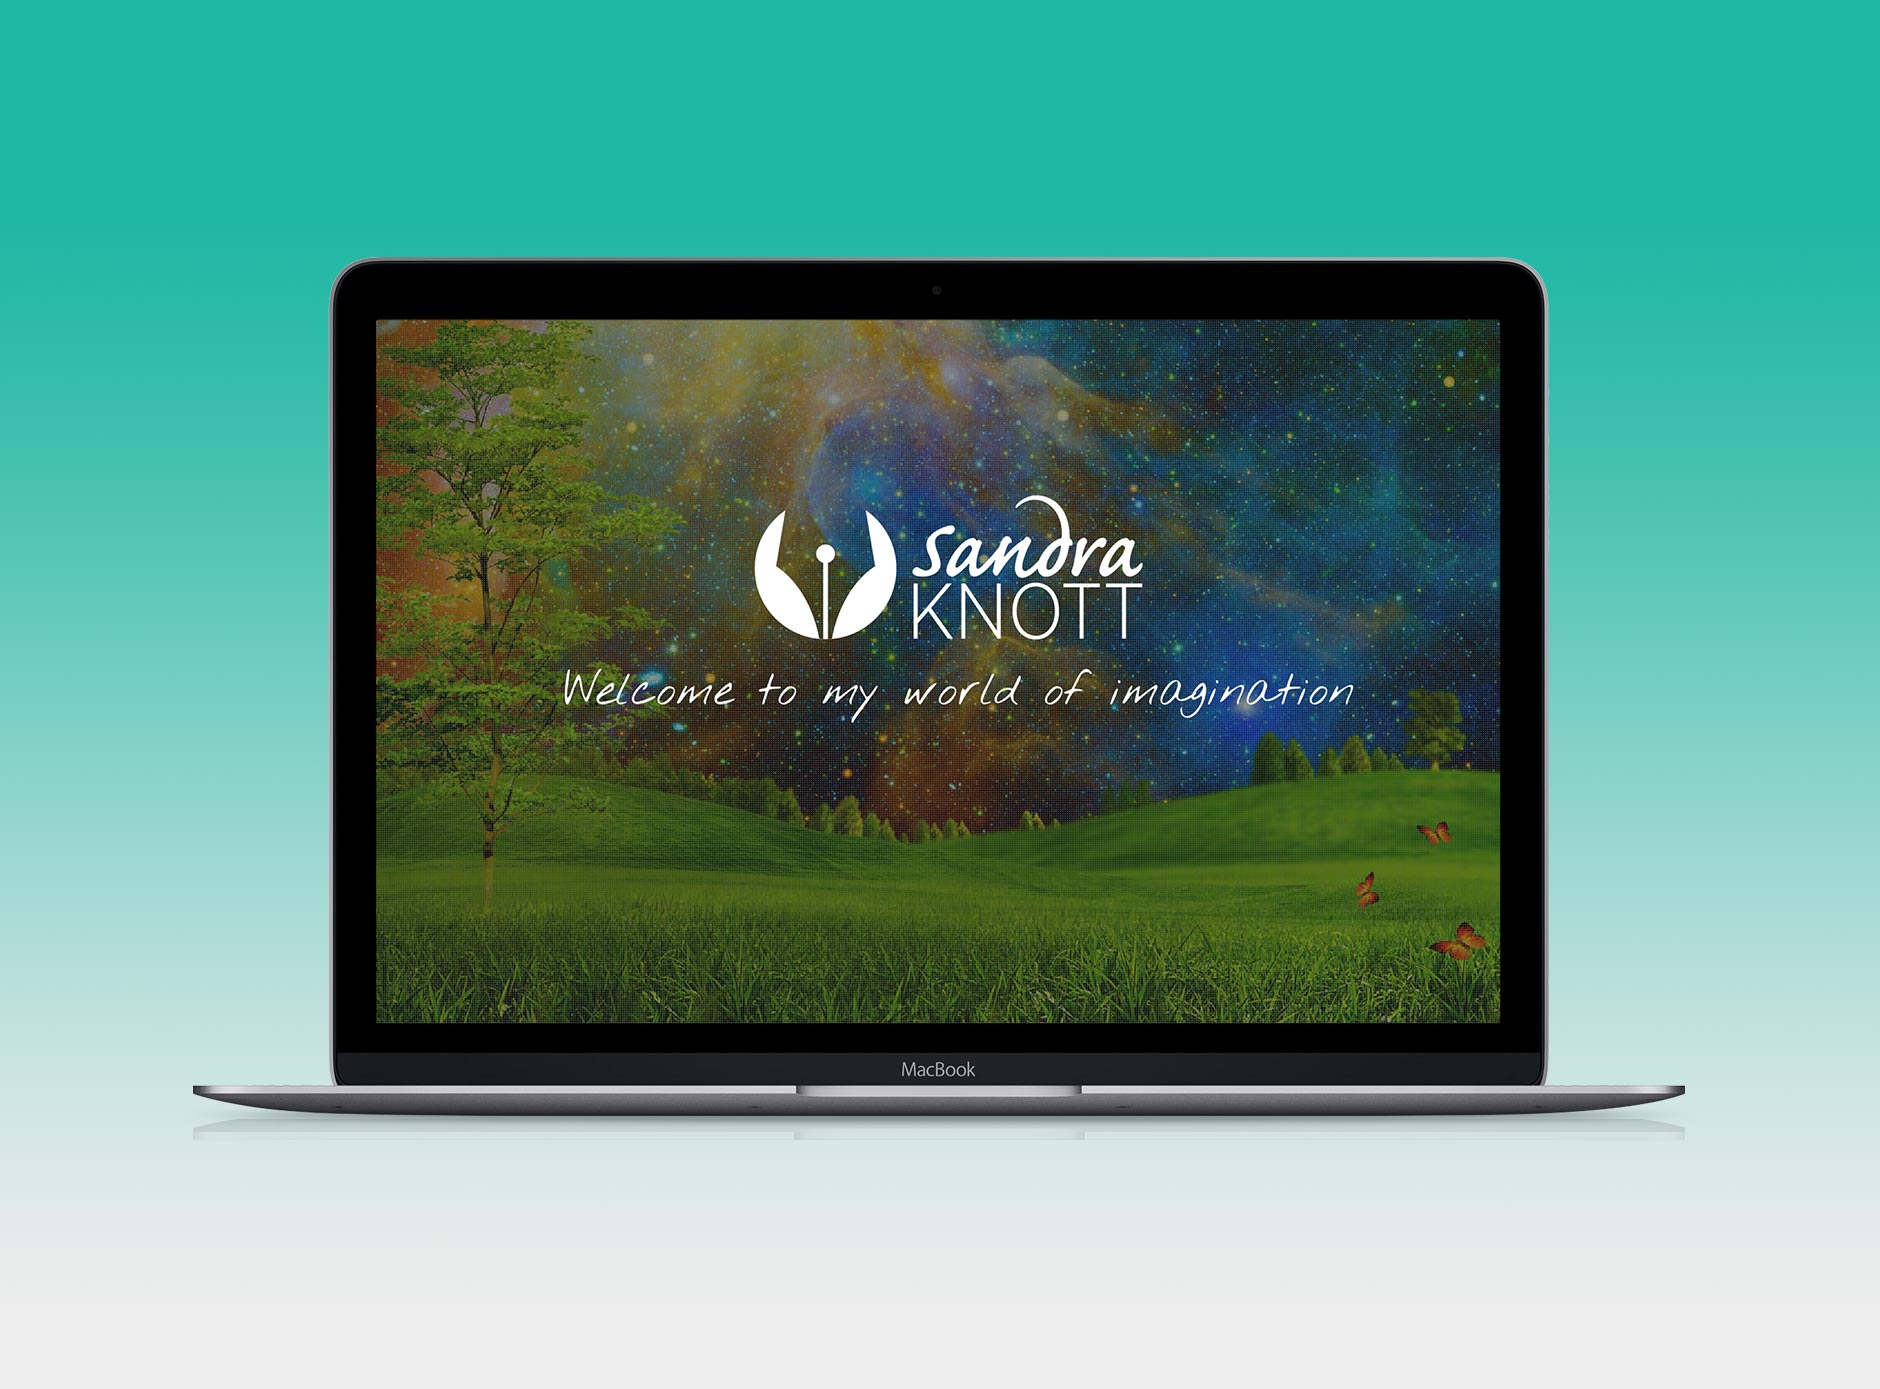 Sandra Knott website